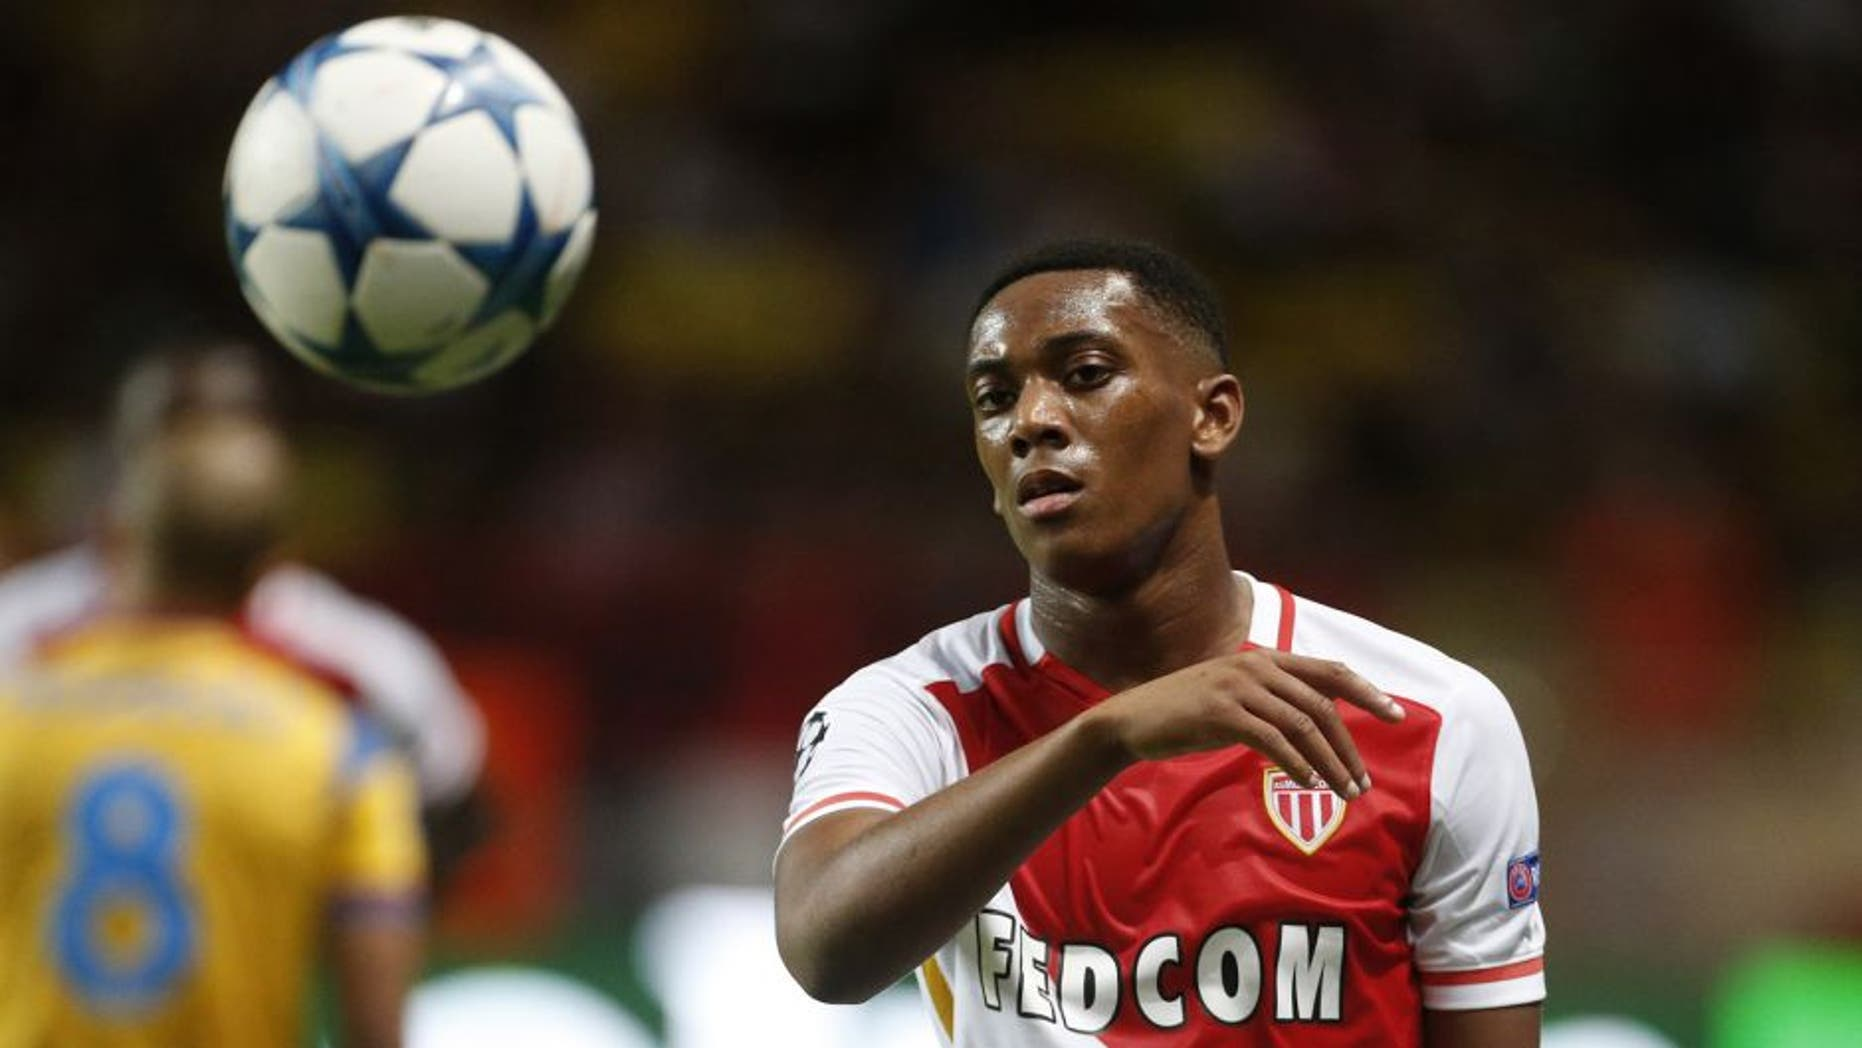 MONACO - AUGUST 25: Anthony Martial of Monaco in action during the UEFA Champions League play off round 2nd leg between AS Monaco and Valencia CF at Stade Louis II on August 25, 2015 in Monaco. (Photo by Jean Catuffe/Getty Images)